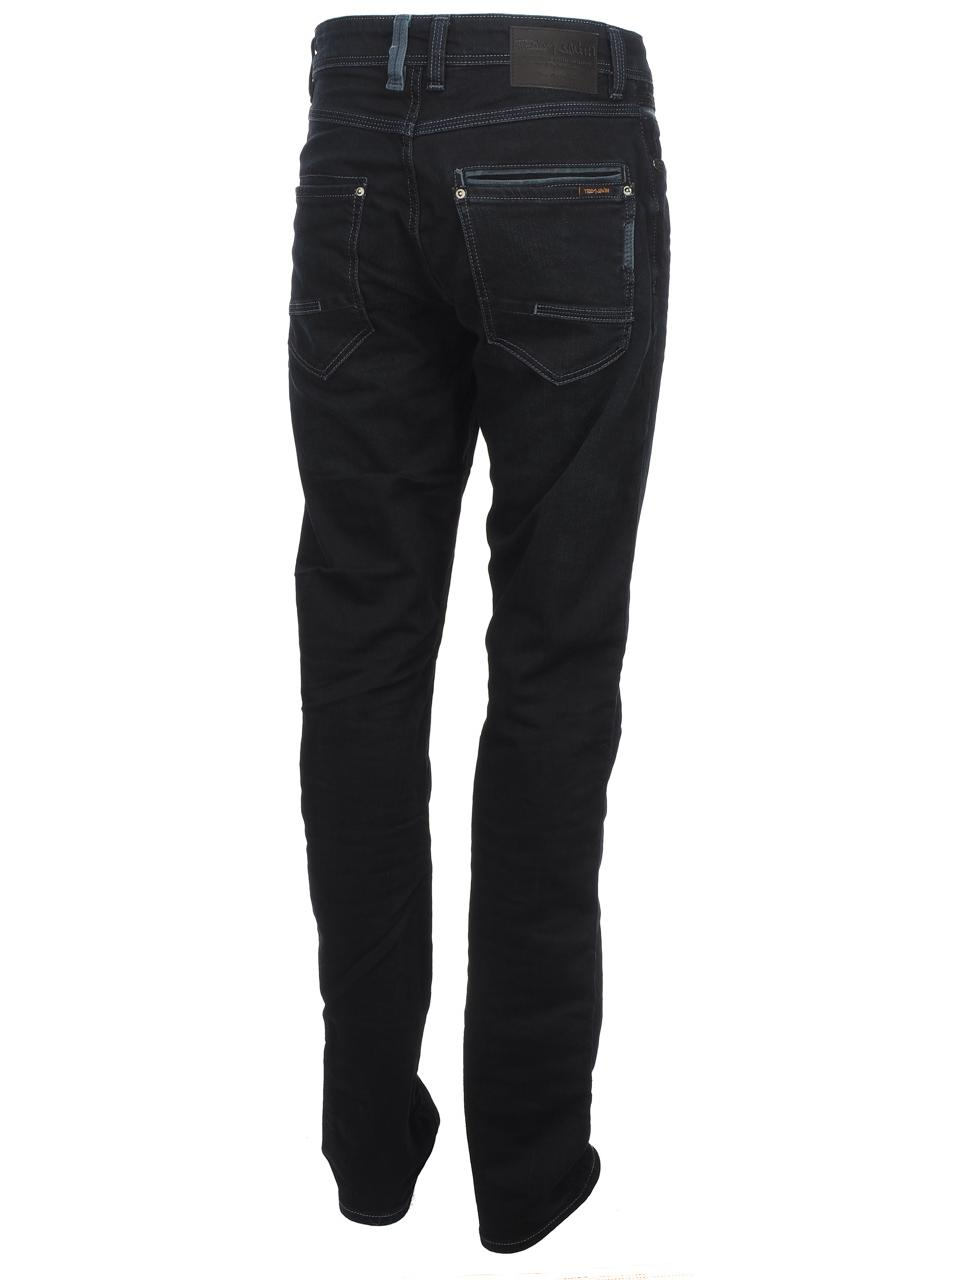 Trousers-Slim-Jeans-Teddy-smith-Rope-Reg-Comf-Usedoldencr-Blue-59500-New thumbnail 5